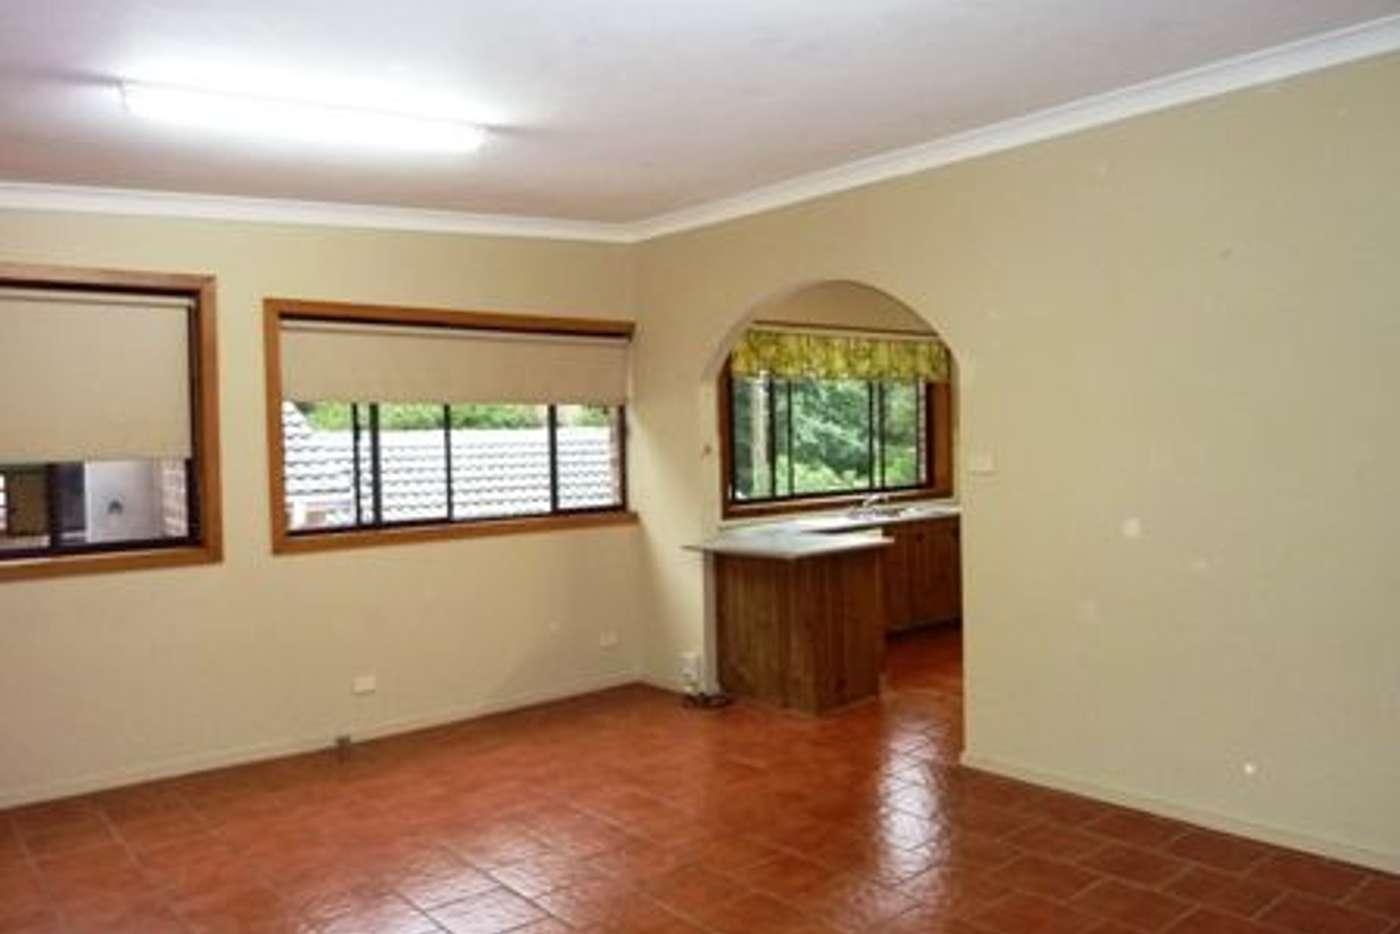 Seventh view of Homely house listing, 71 Asquith Street, Austinmer NSW 2515